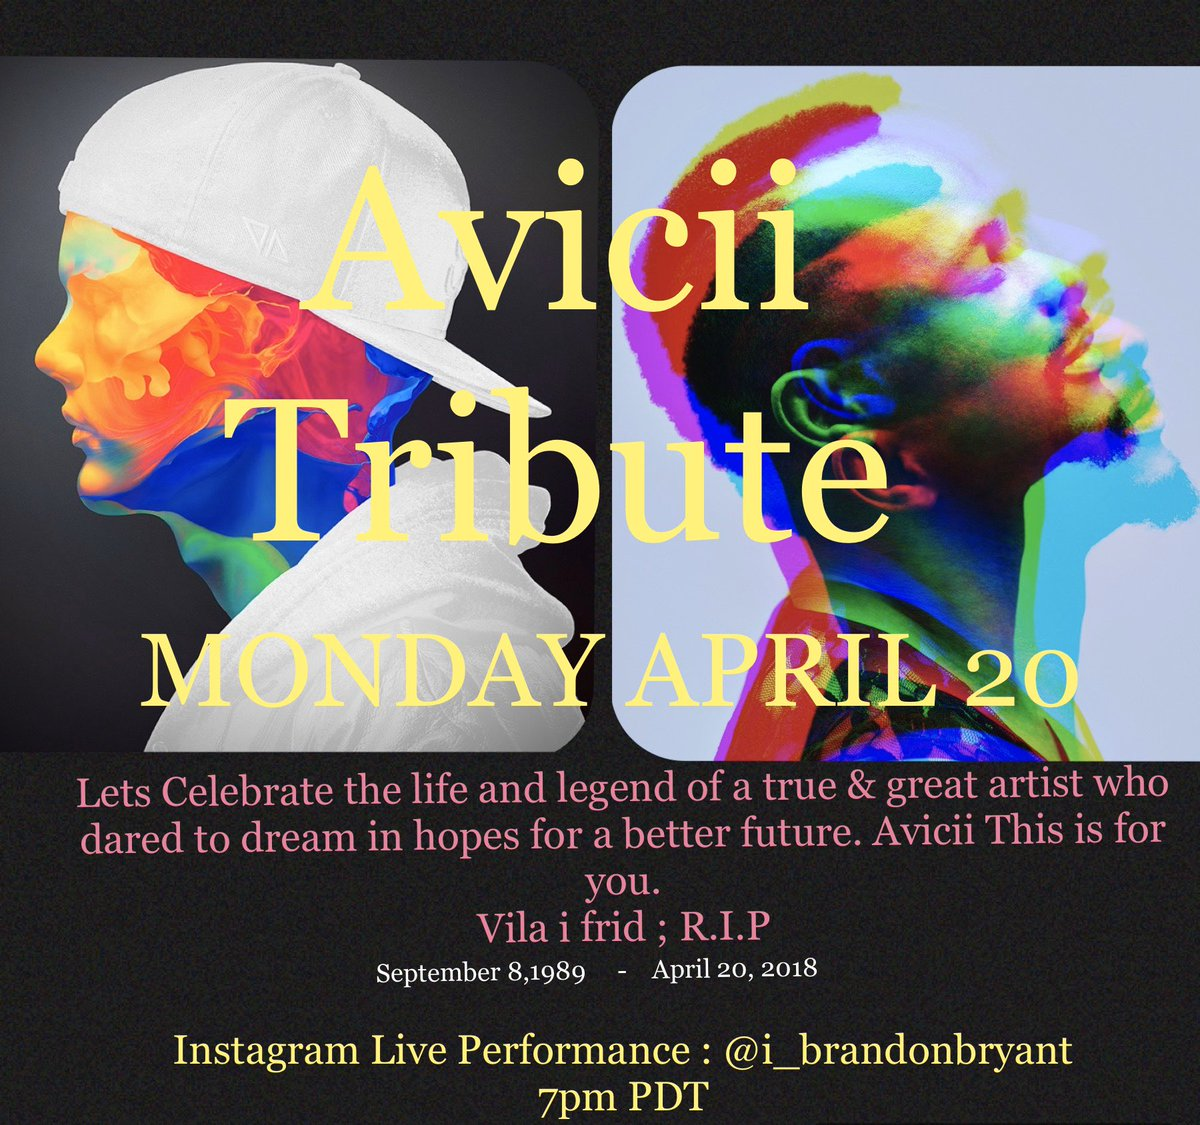 This coming Monday I will be performing a one man show, to give respects to one of my all time favorite Dj's, AVICII! I'm asking your help to spread the word. Here is my flyer and show goes live at 7pmPDT  I hope you enjoy!! https://t.co/B5NdyoKUlg